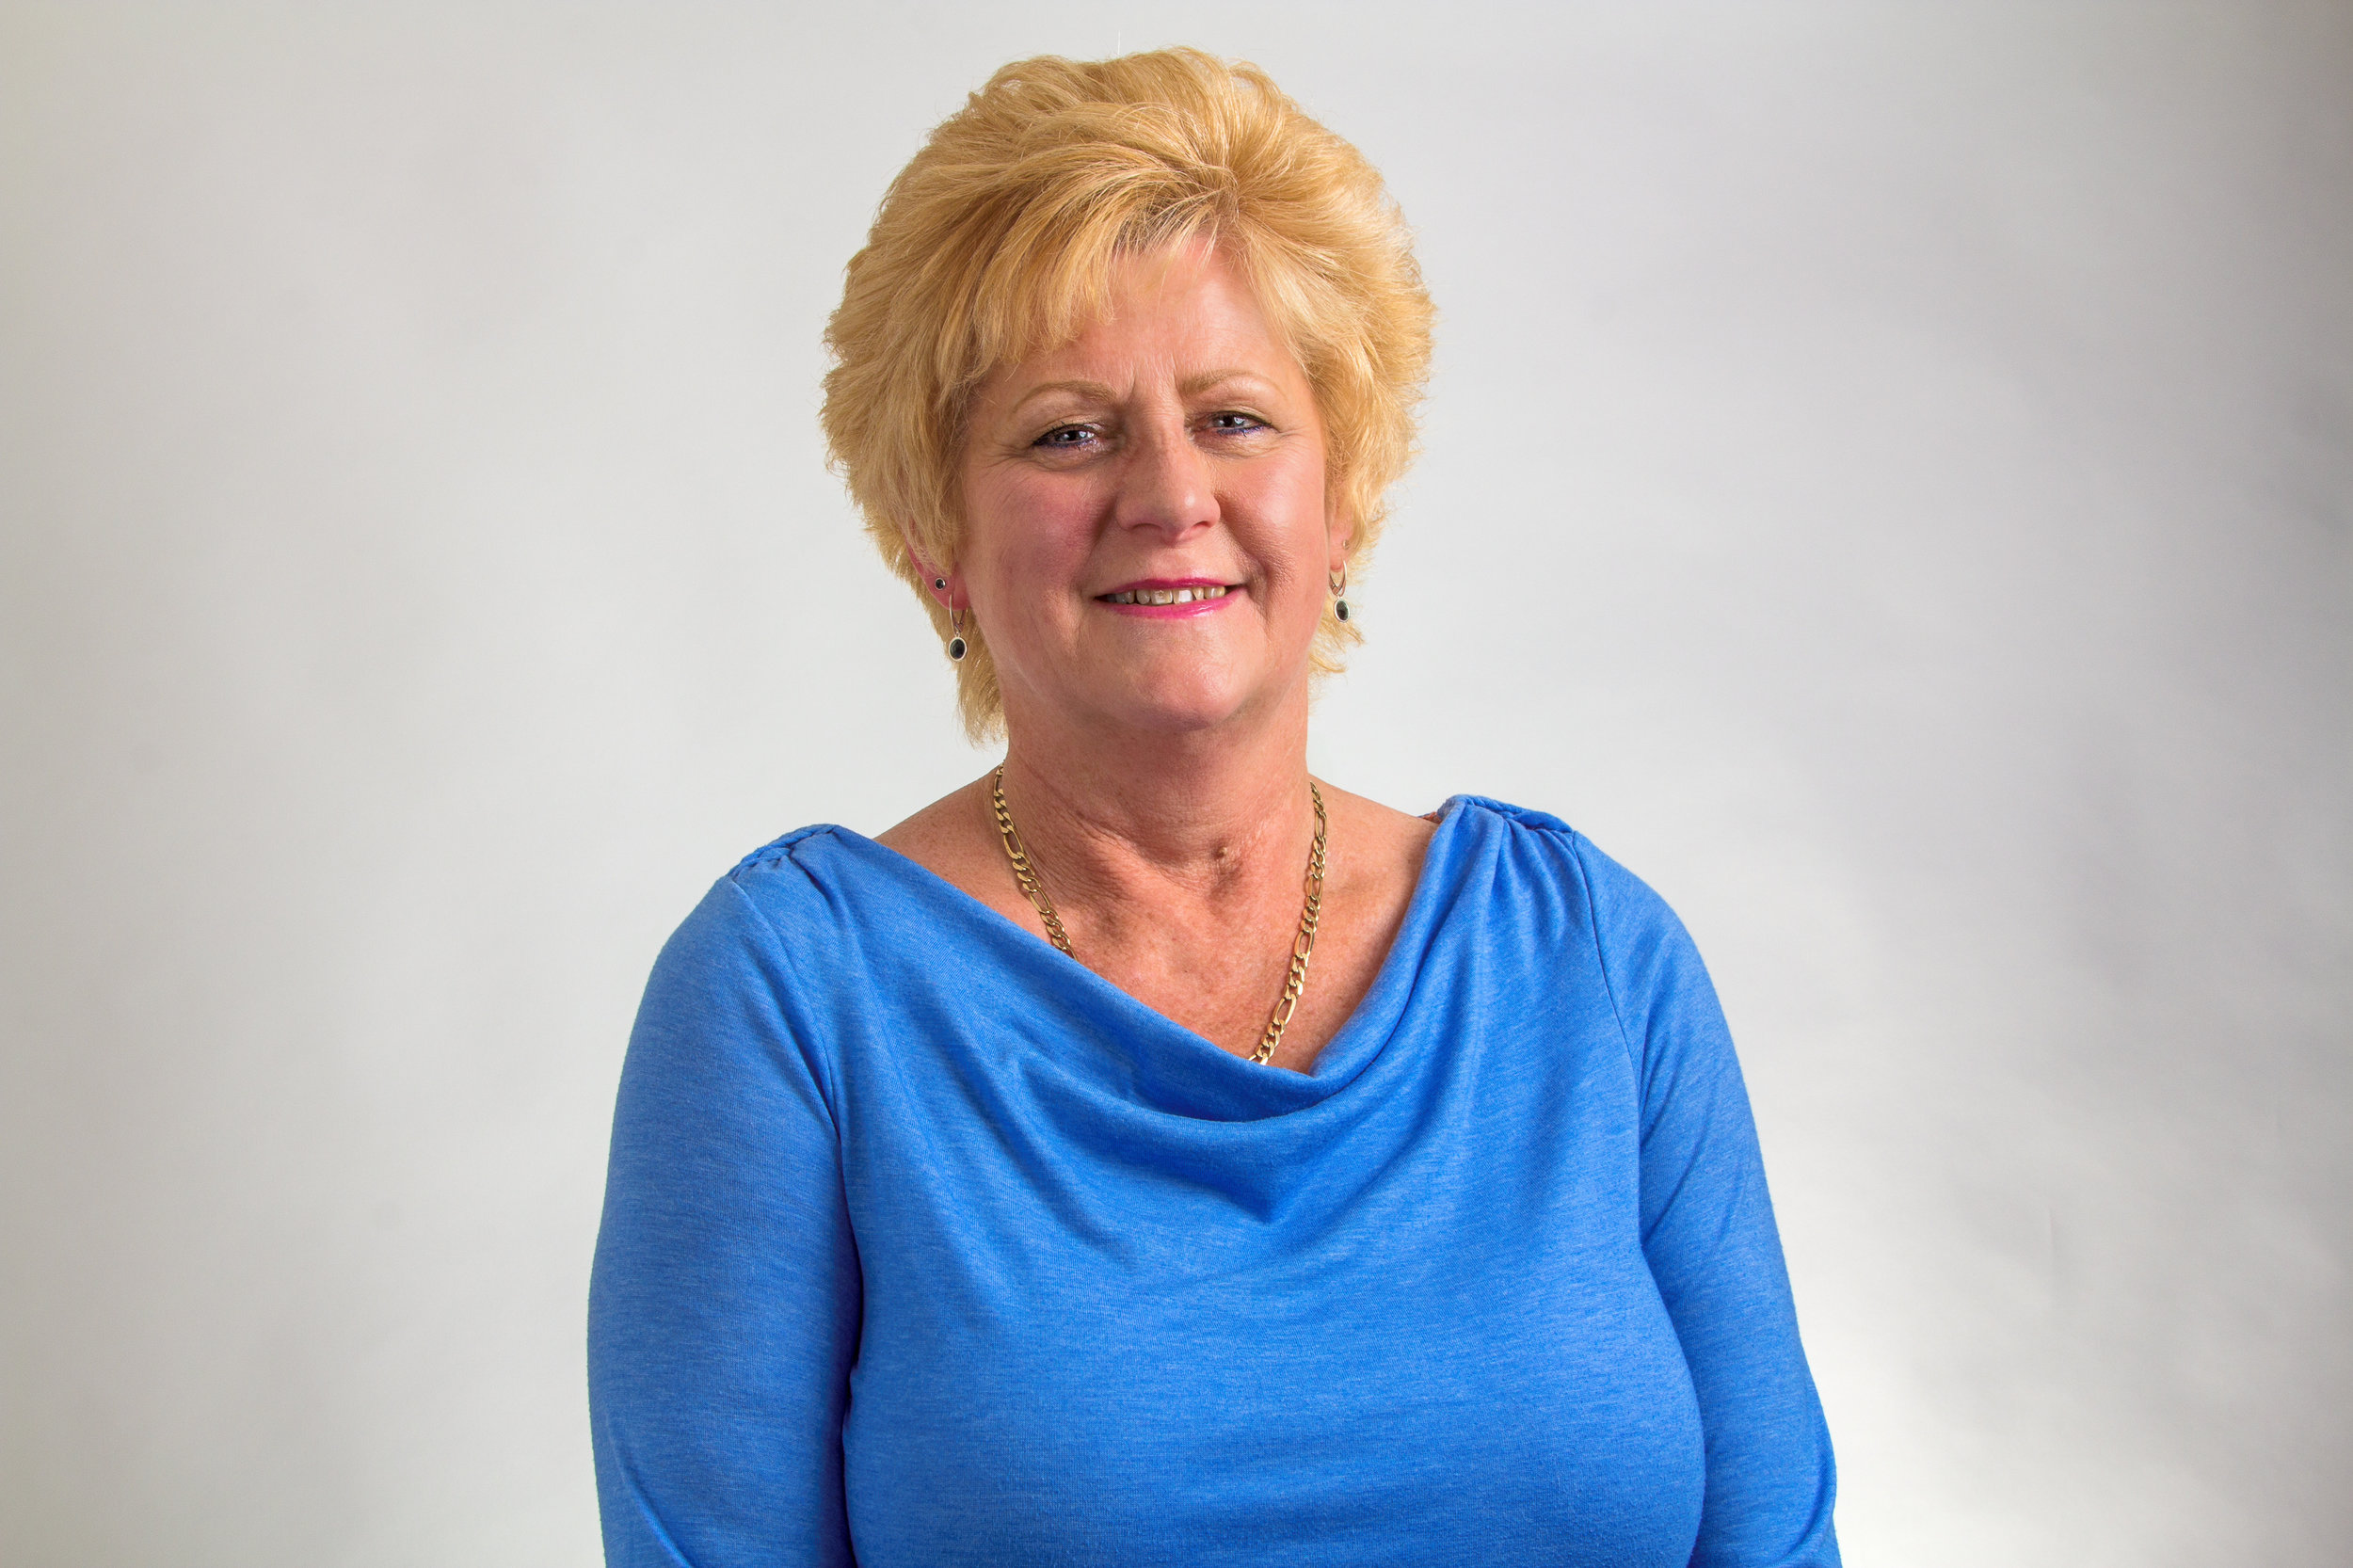 Jane Roberts Office Manager  Jane is an experienced manager, who has worked in client facing roles for over 40 years. Jane joined MIP in June 2018 - for the previous 24 years she worked at Cranfield School of Management.